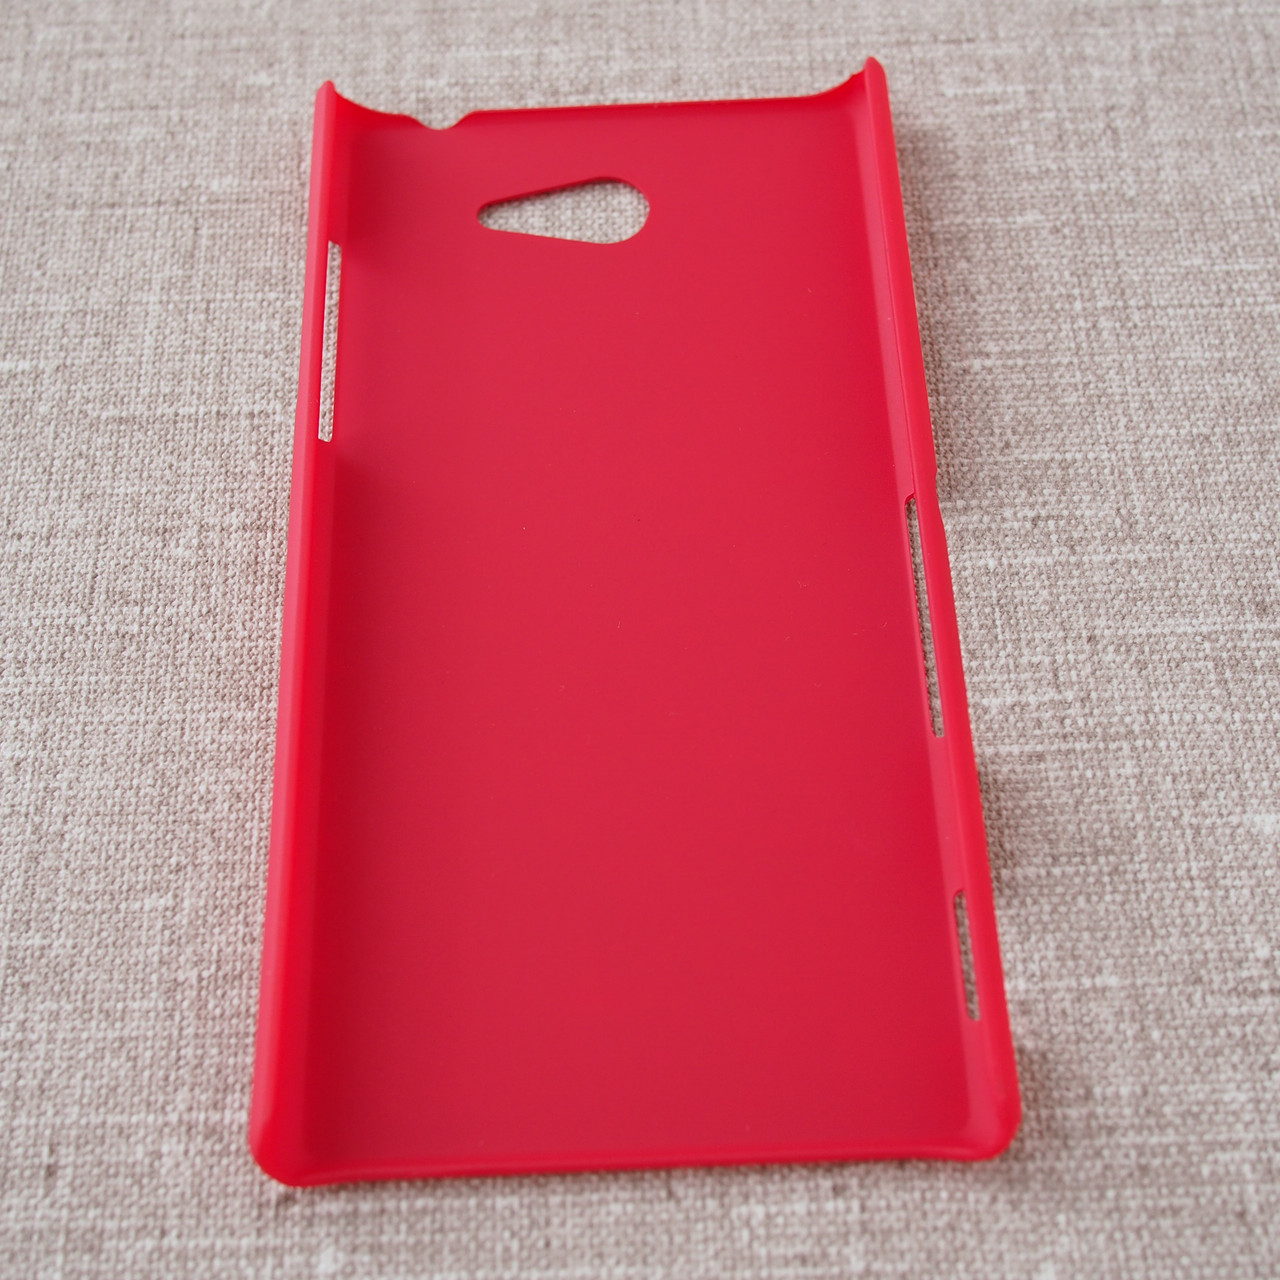 Nillkin Super Frosted Shield Sony Xperia M2